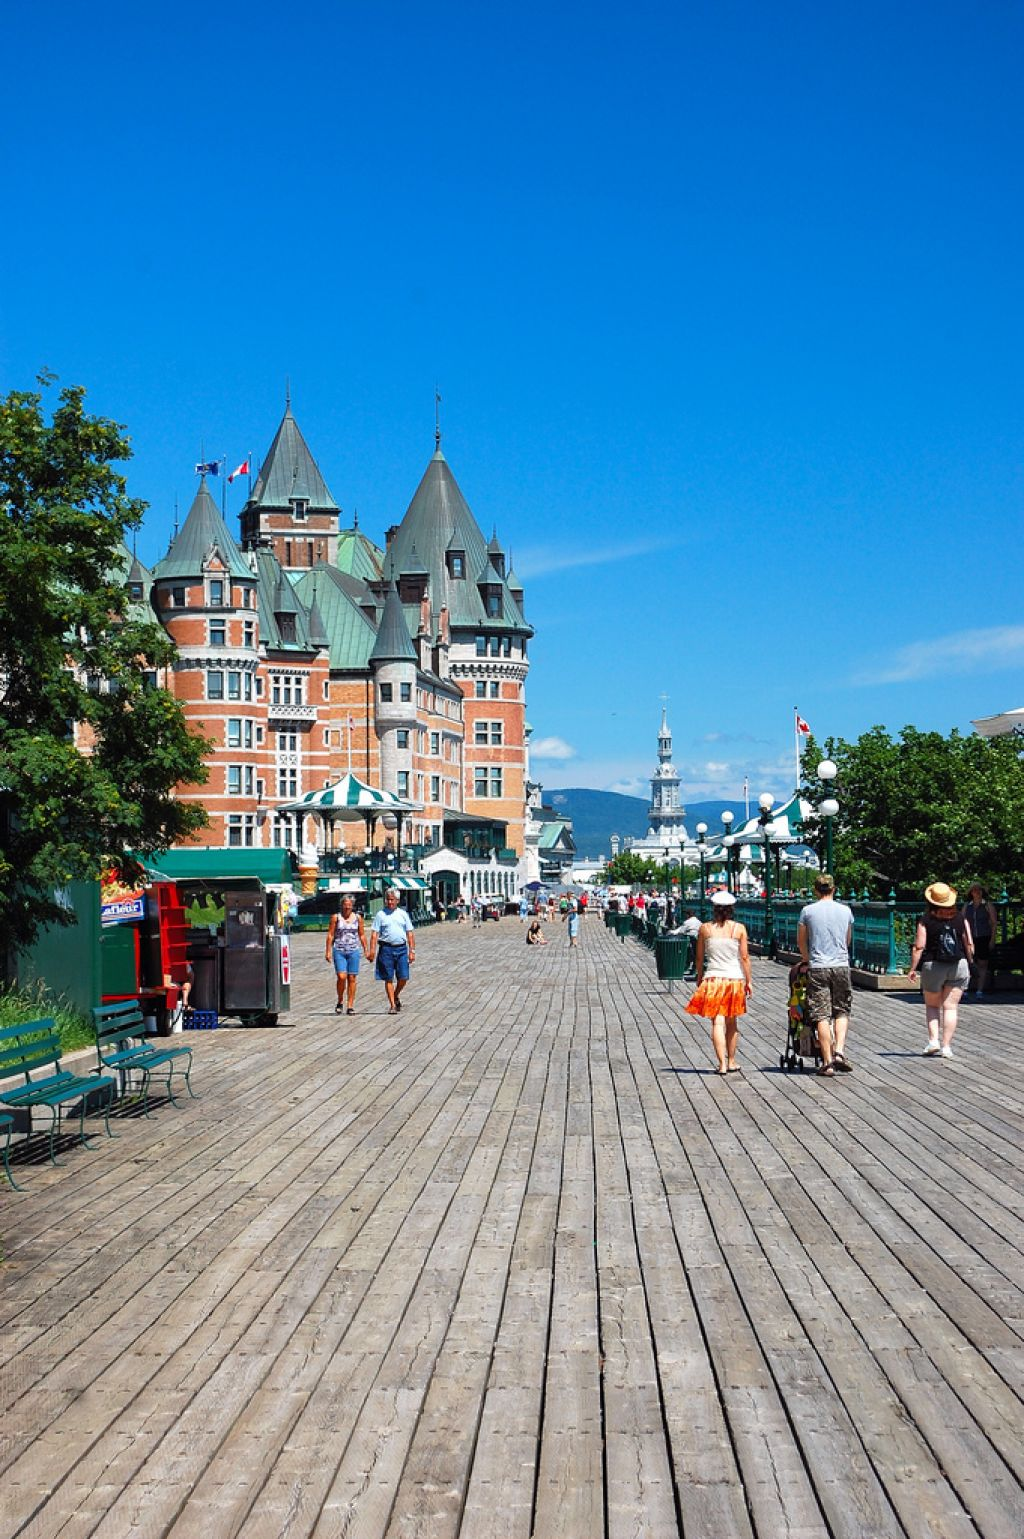 frontenac4 Chateau Frontenac   National Historic Site of Canada